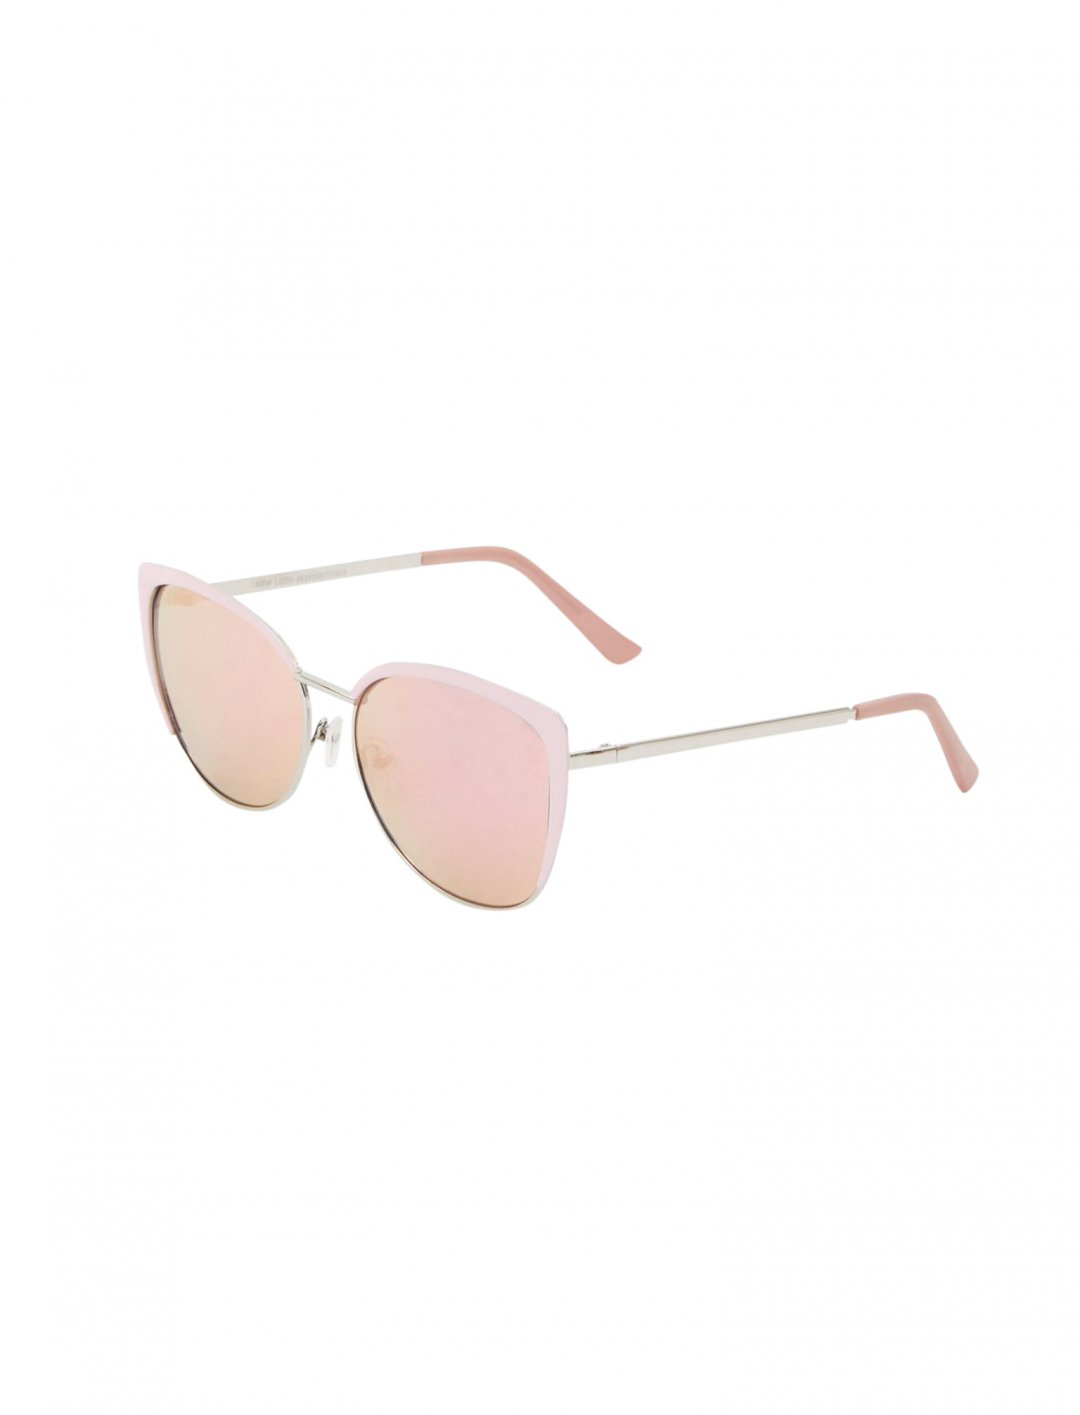 "New Look Pink Retro Sunglasses {""id"":16,""product_section_id"":1,""name"":""Accessories"",""order"":15} New Look"